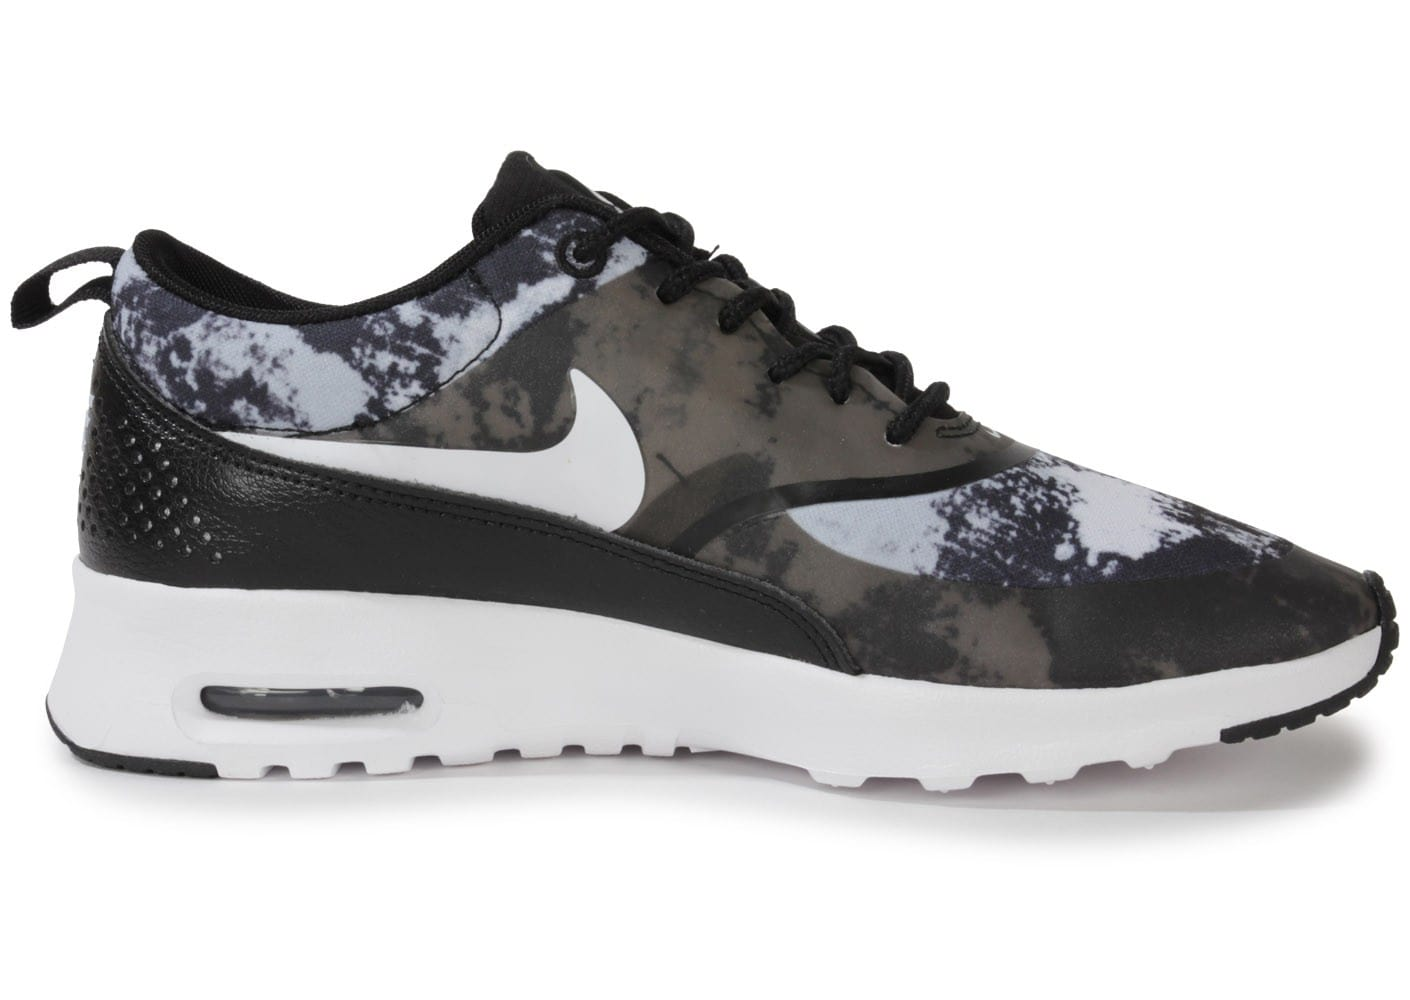 nike air max thea print noire chaussures chaussures chausport. Black Bedroom Furniture Sets. Home Design Ideas